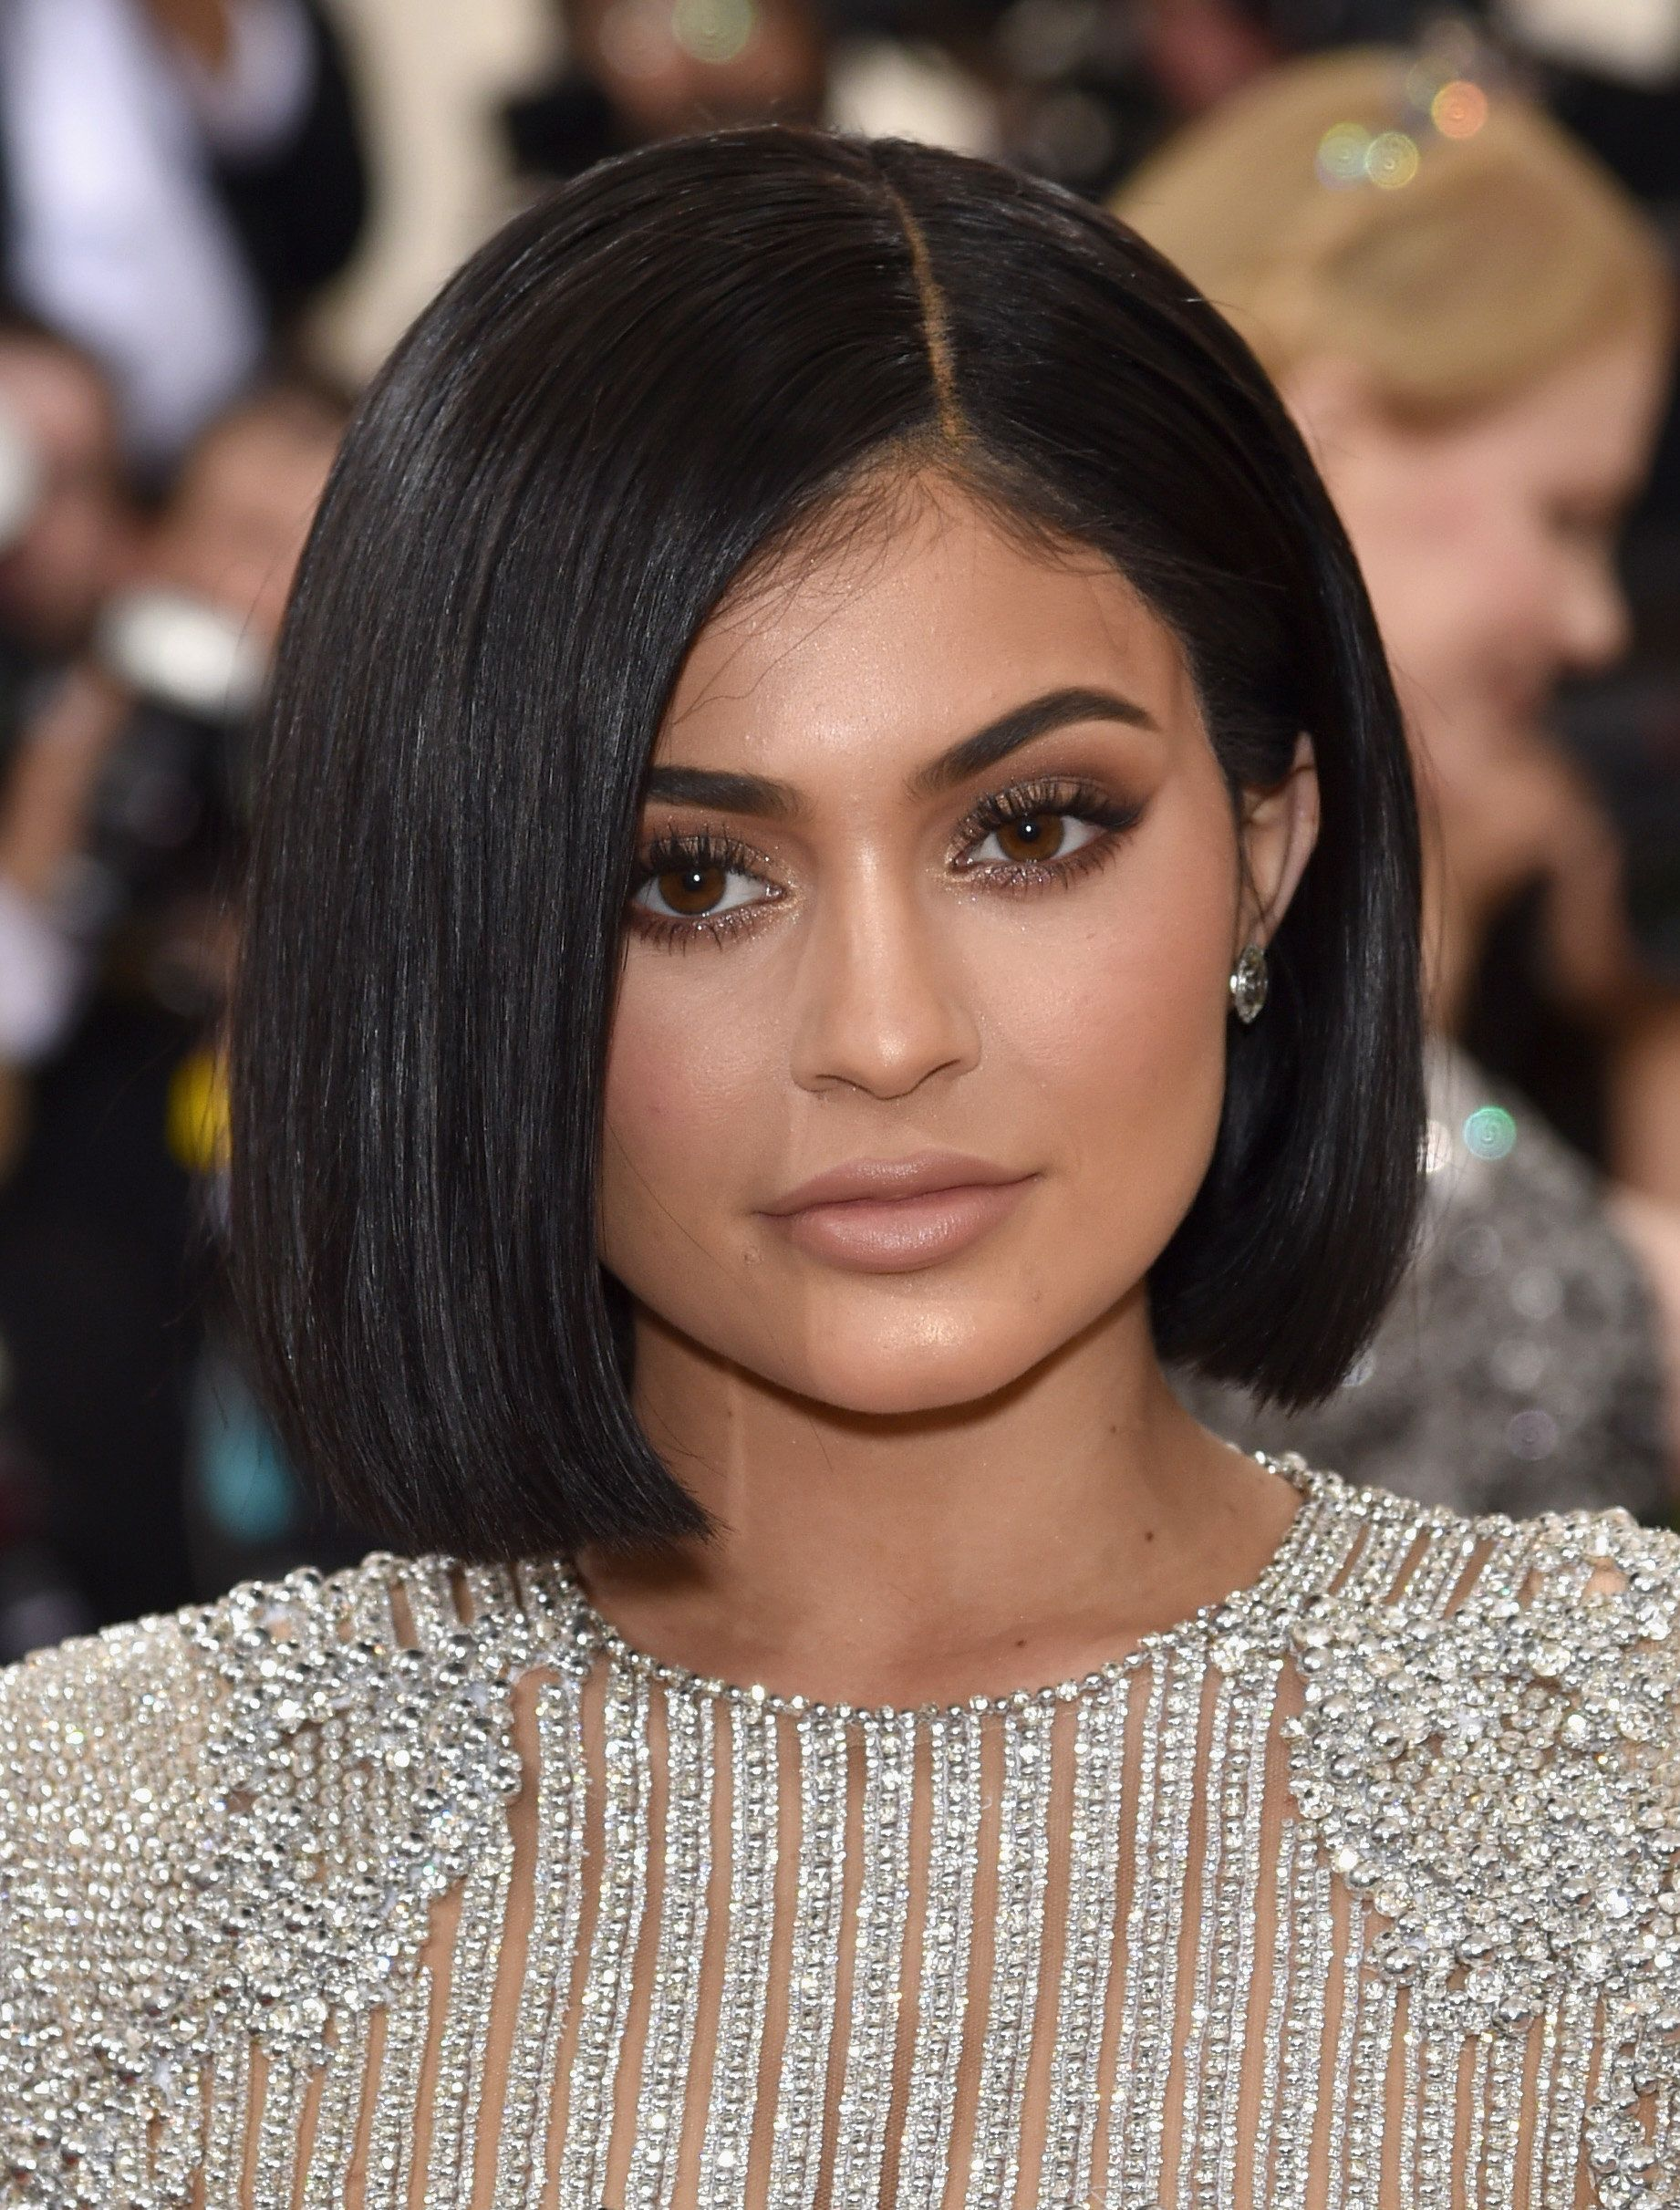 Kylie Jenner has joined the bob haircut brigade.